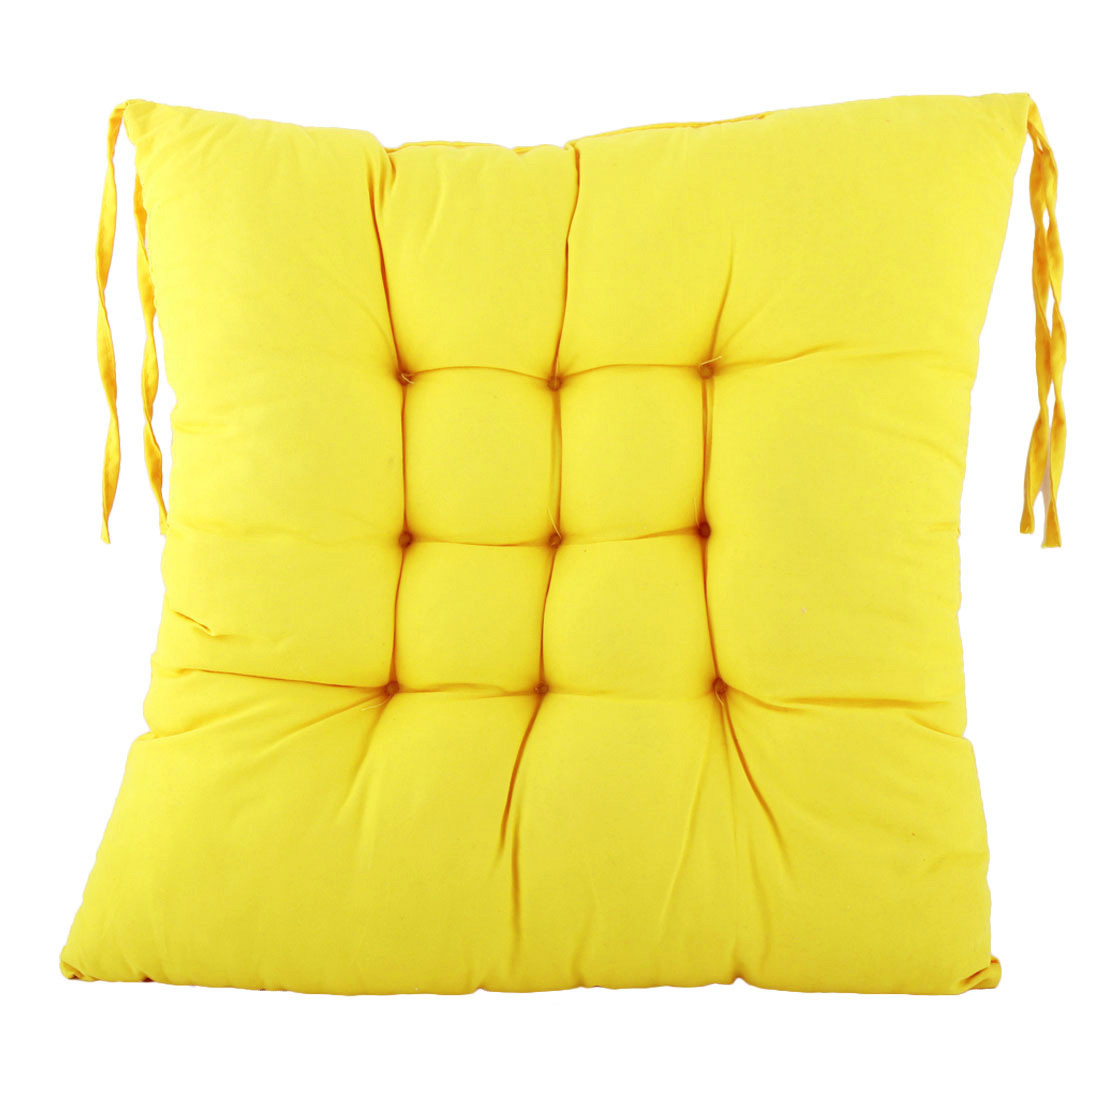 Home Sofa Reilf Cotton Blends Strap Design Thickened Chair Seat Cushion Pad Yellow